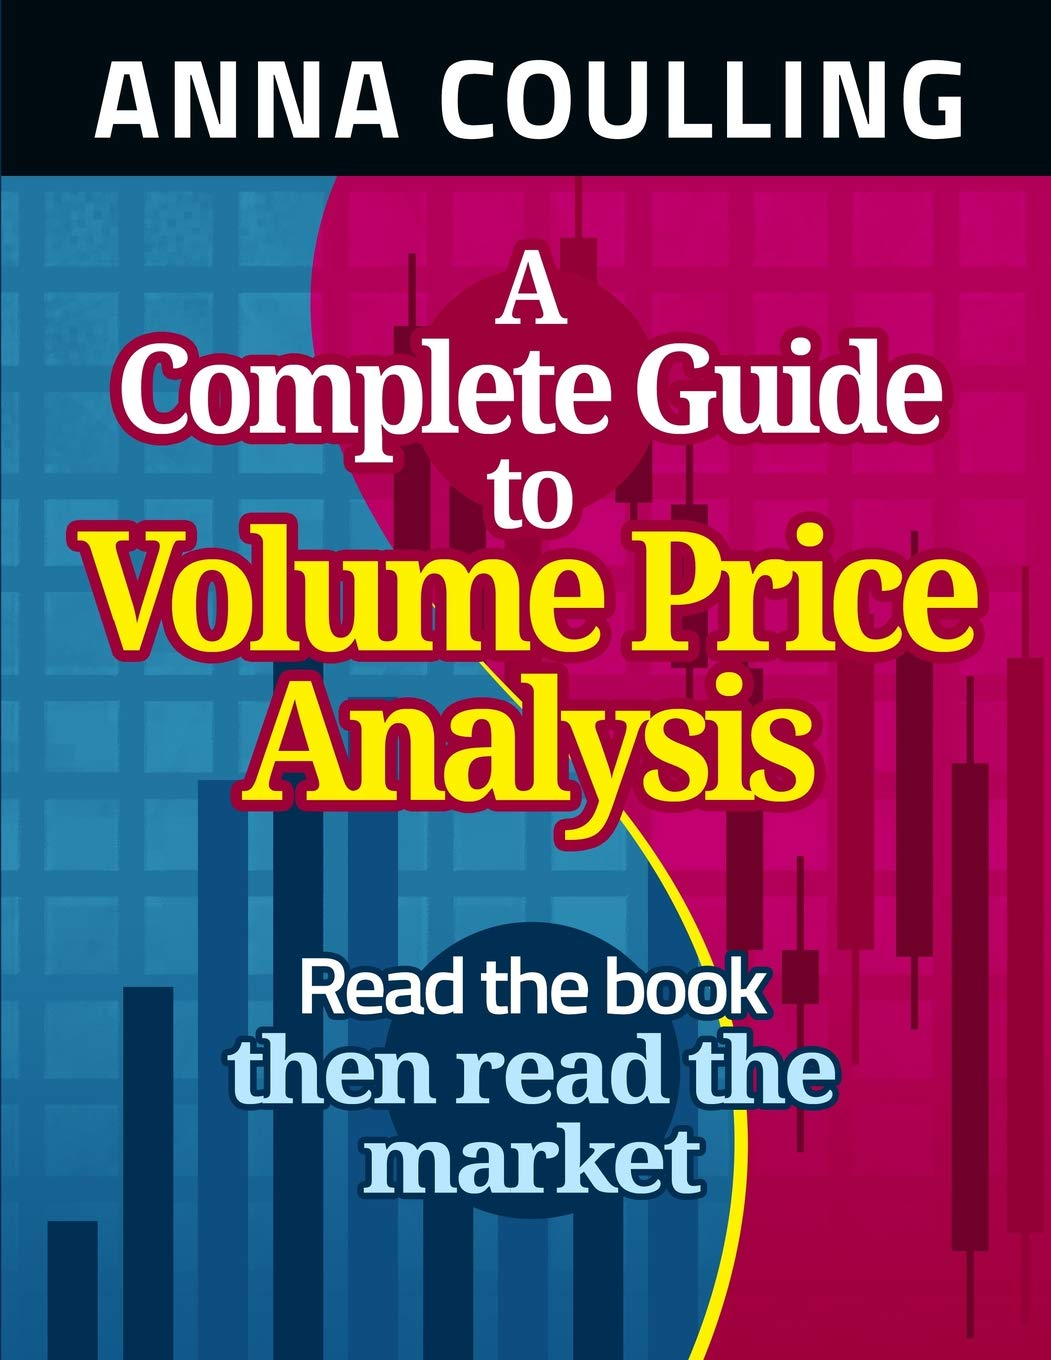 A Complete Guide To Volume Price Analysis: Amazon.es: Anna Coulling: Libros en idiomas extranjeros